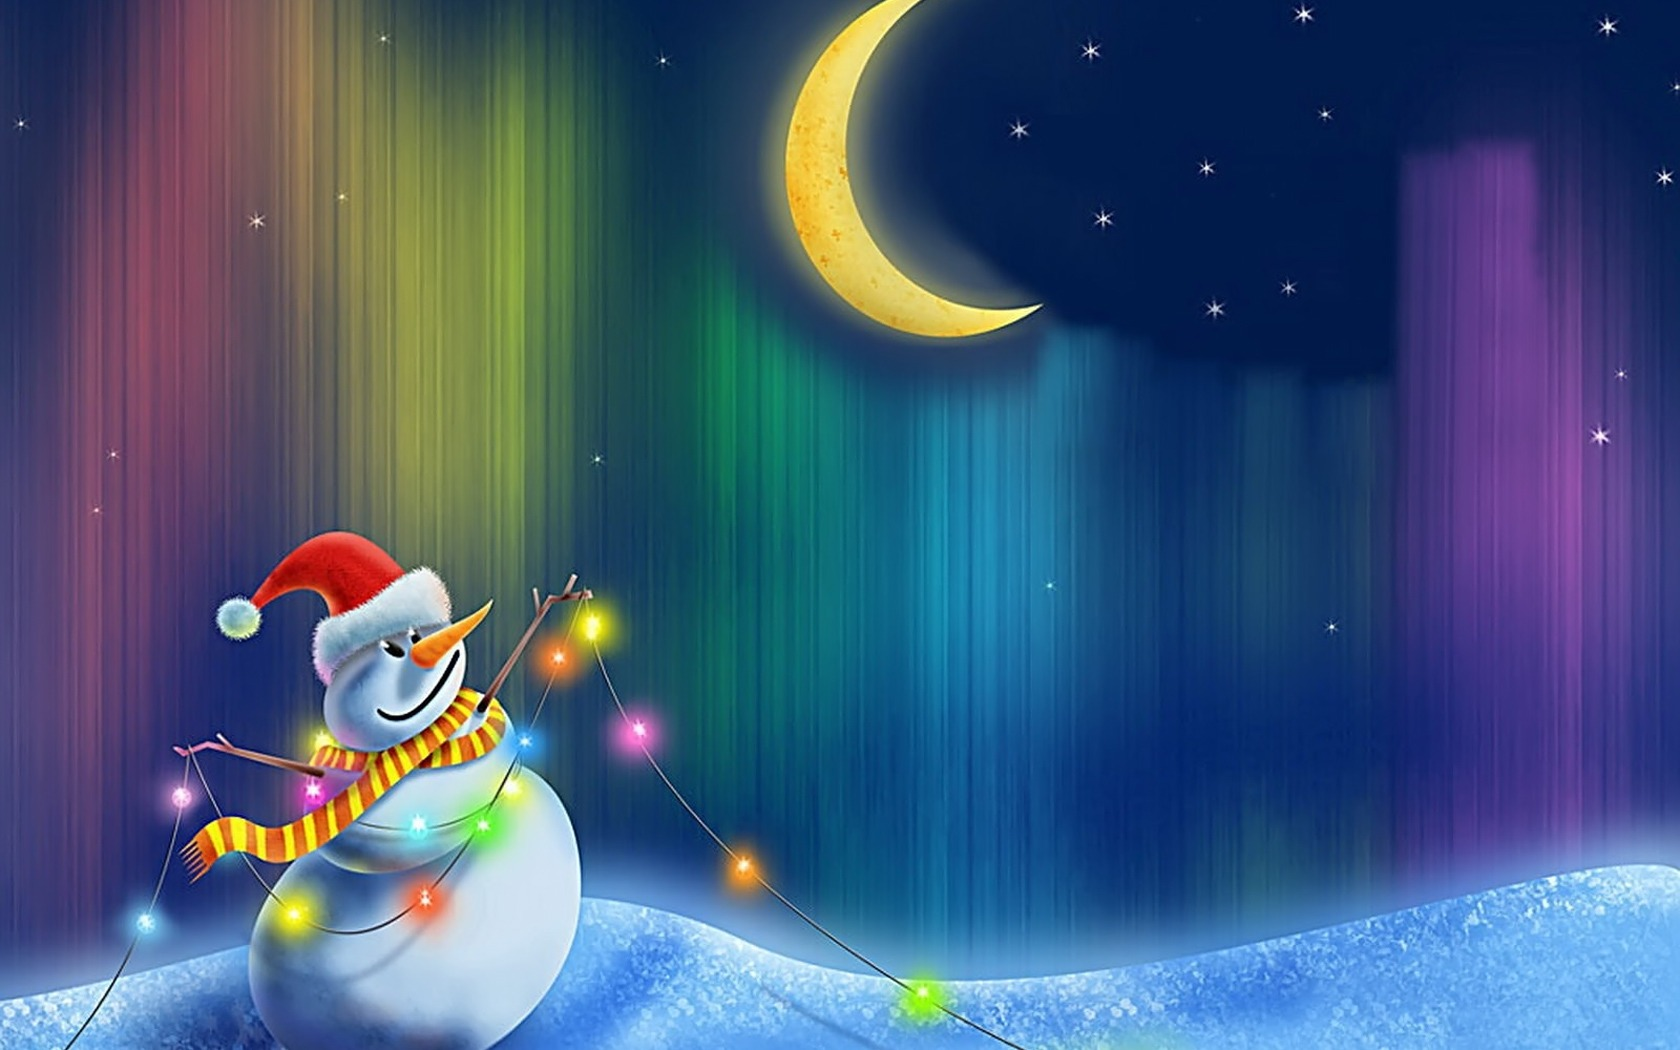 Go back to Free Christmas Wallpapers and Screensavers Next Image »